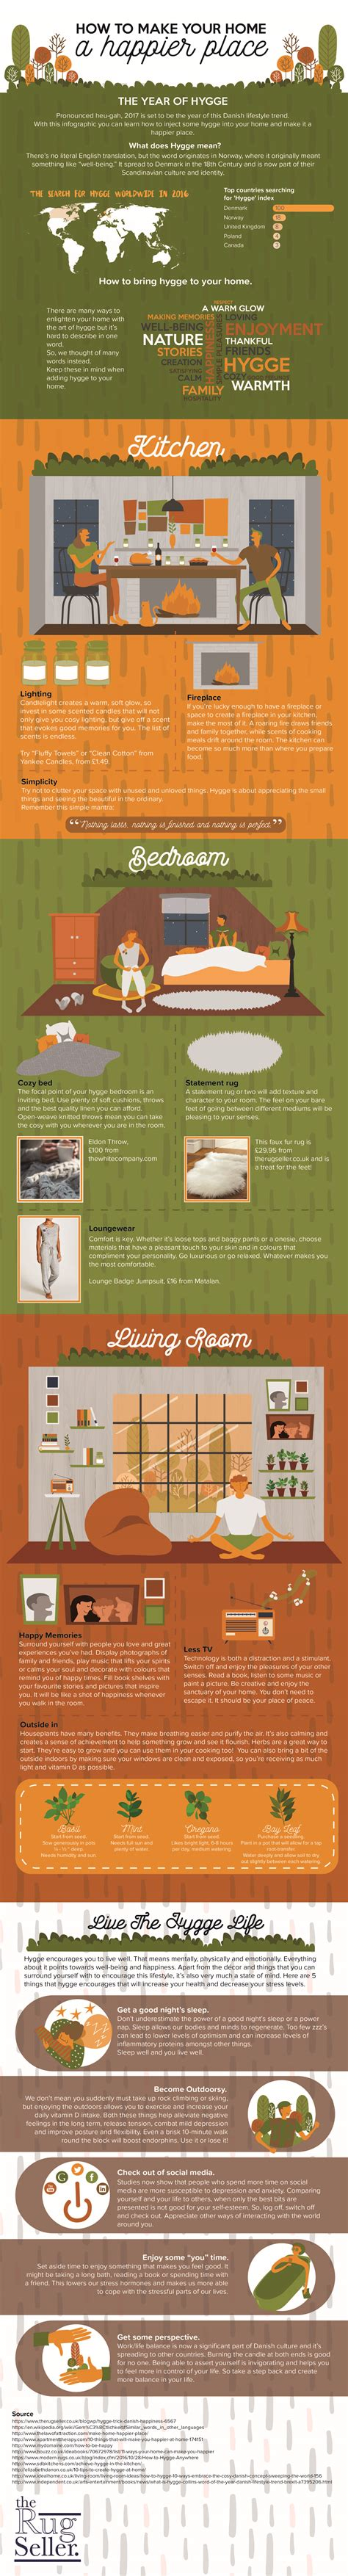 how to make your house green 100 how to make your house green how to make a